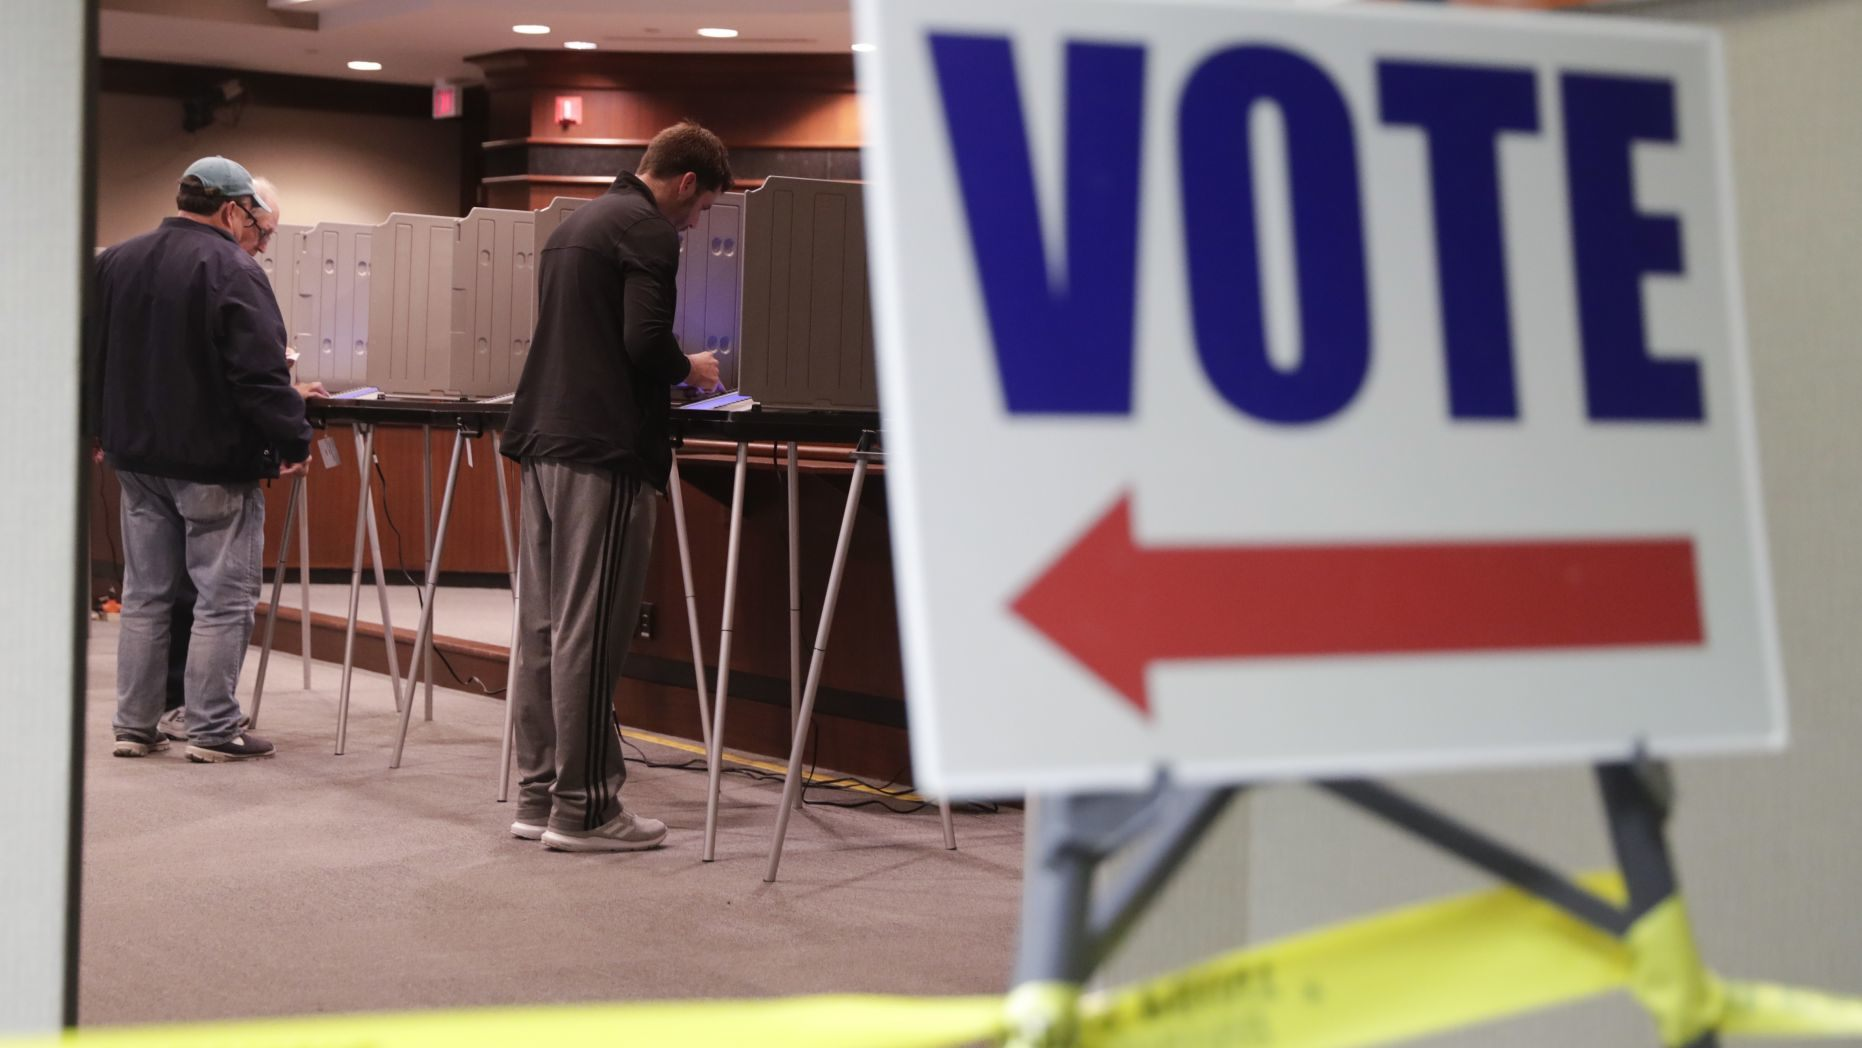 Colorado Dems look to ditch Electoral College system thumbnail